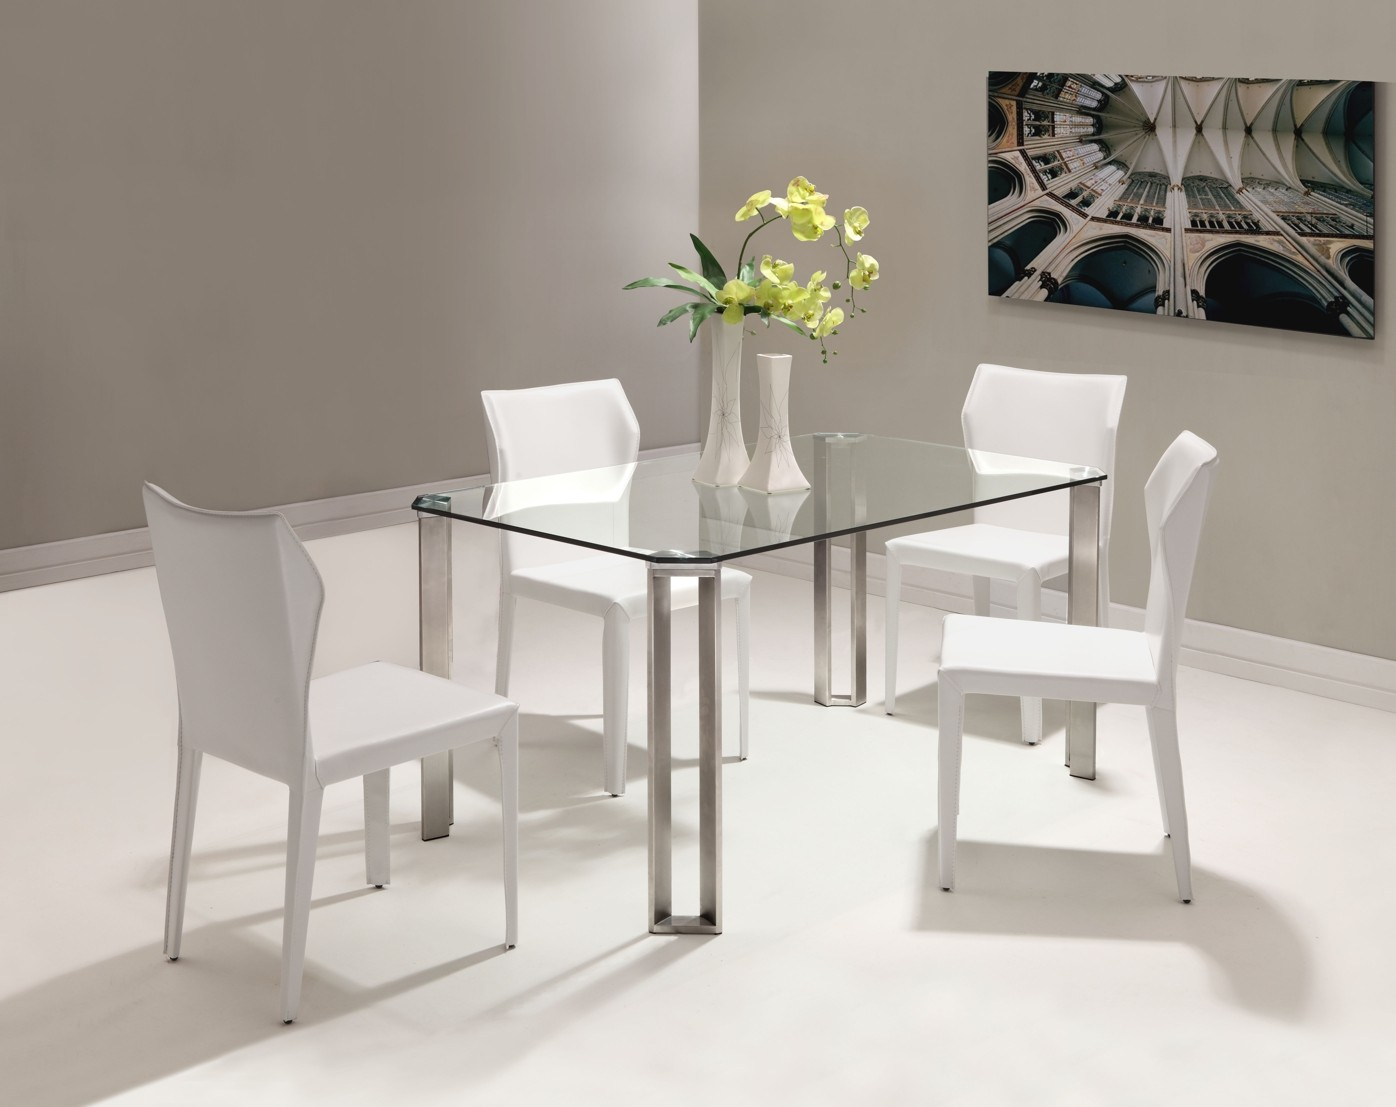 Lovely Small Rectangular Glass Dining Table Part - 1: Small Rectangular Dining Table With Glass Design And White Chairs